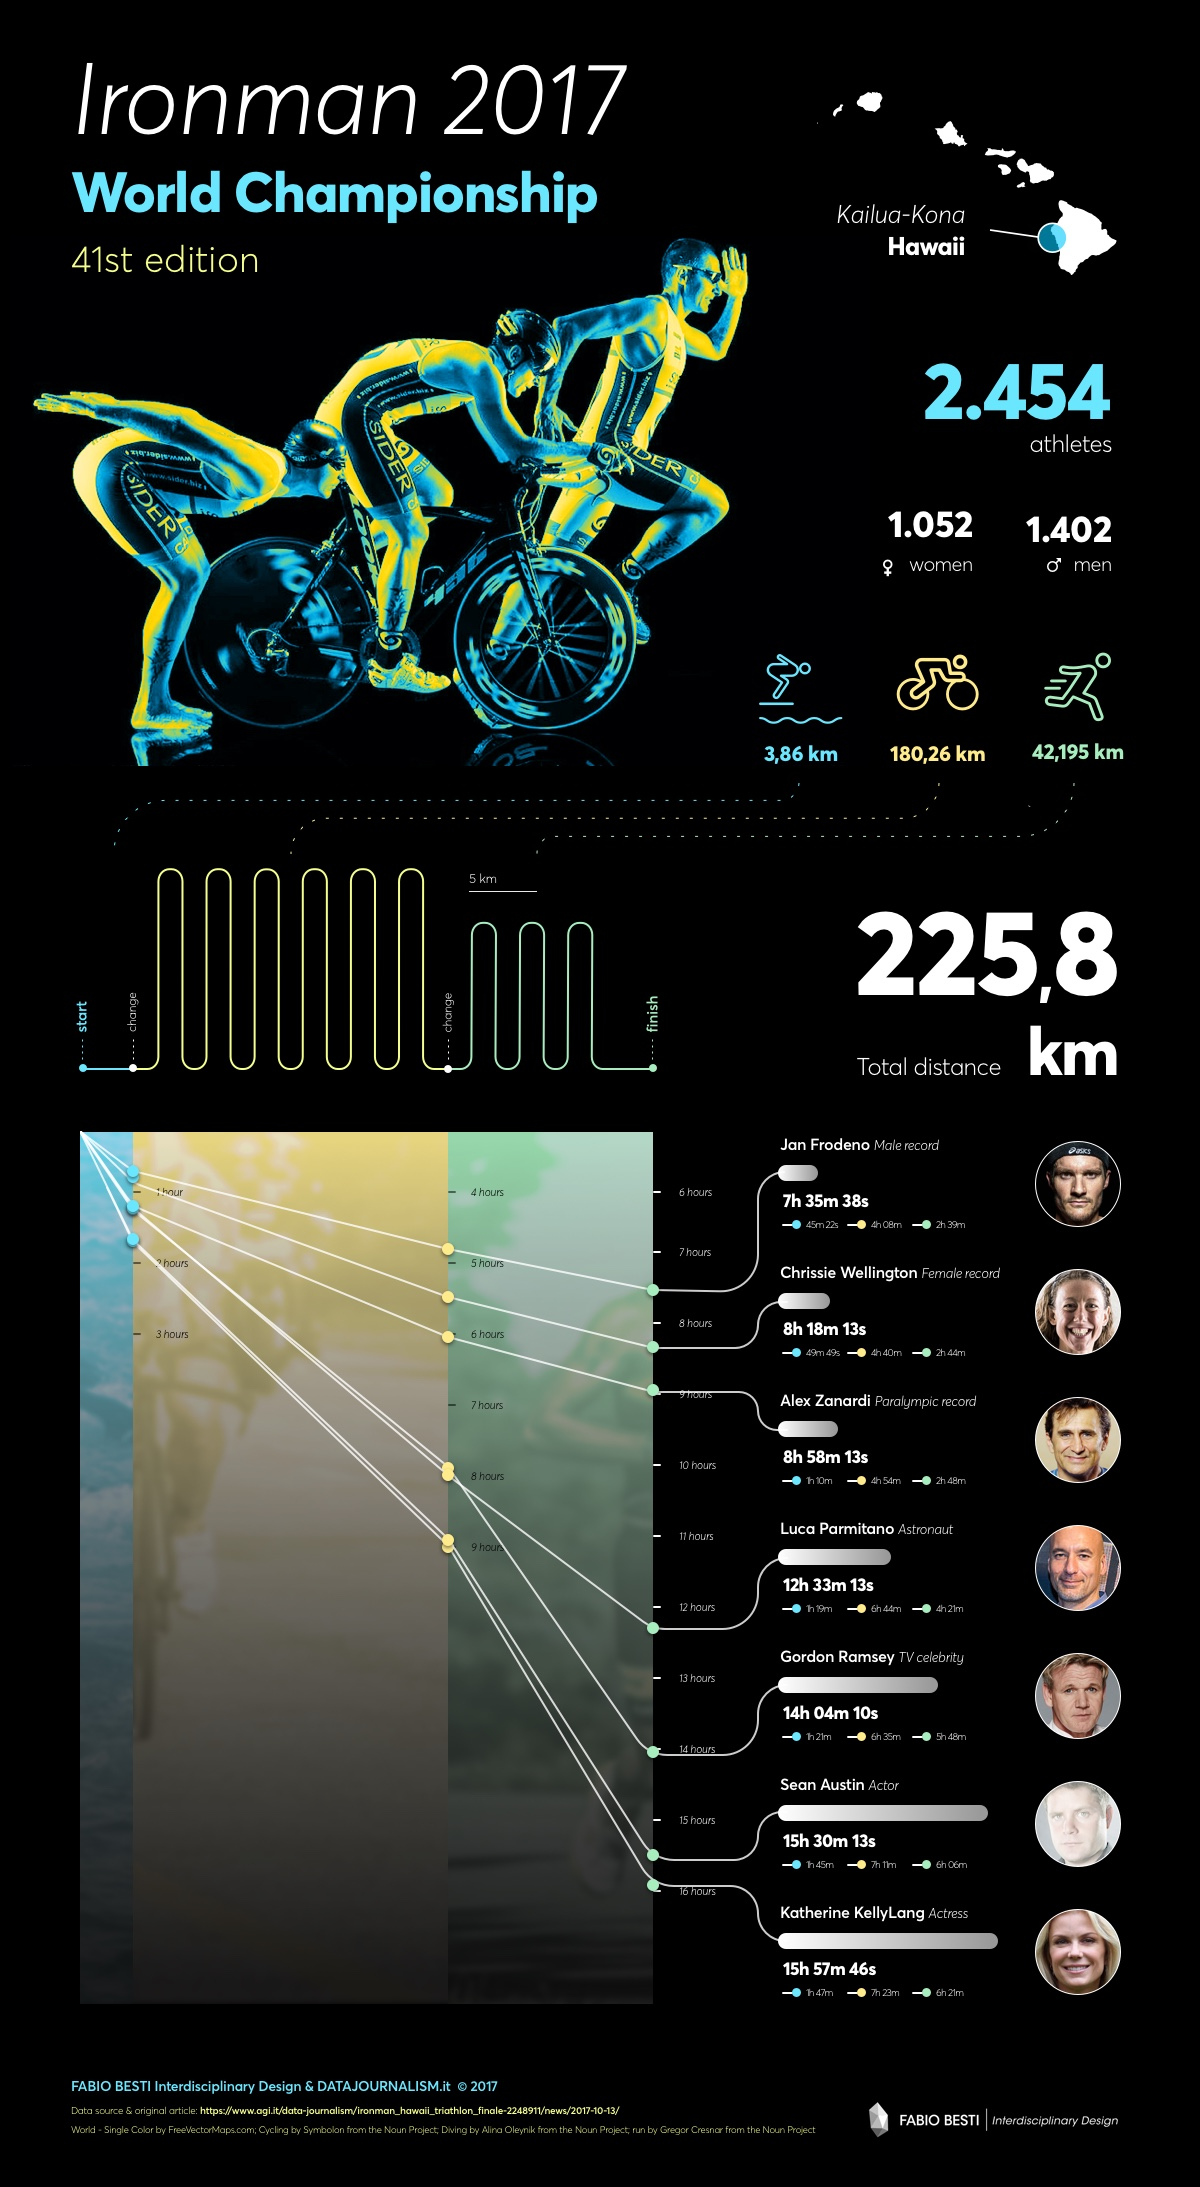 Ironman World Championship 2017 Data Visualization by Fabio Besti Interdisciplinary Design